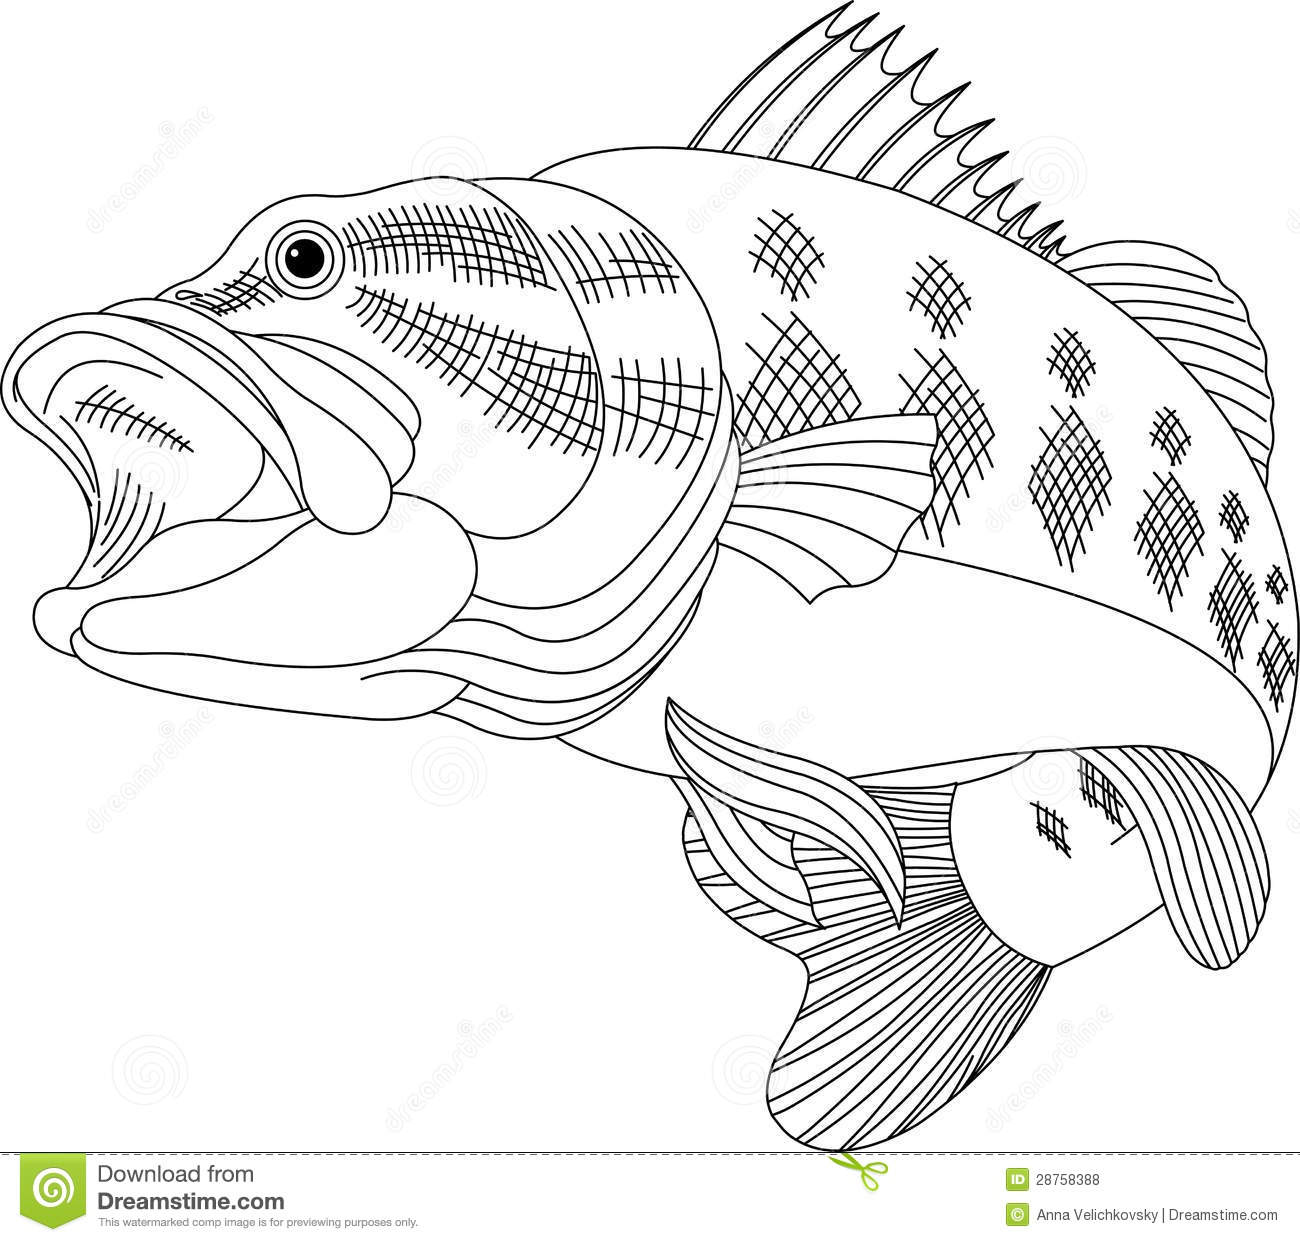 How To Draw Big Mouth Fish